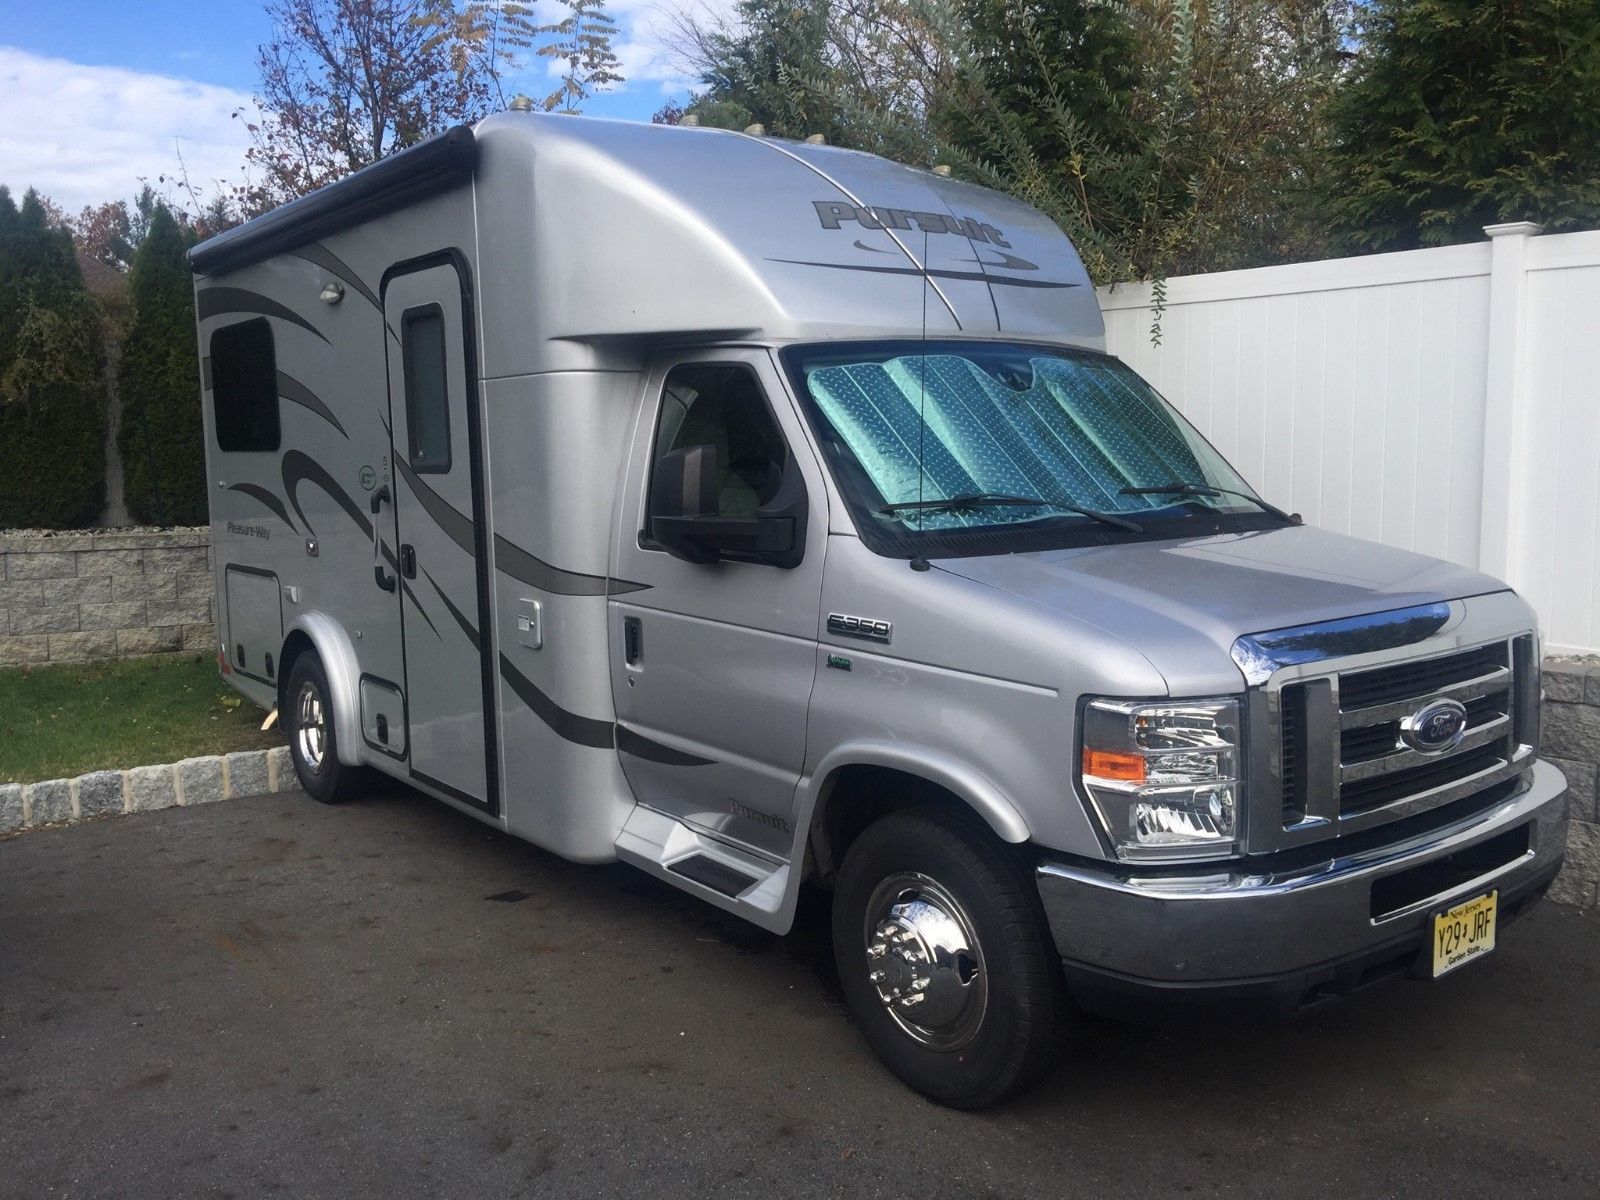 lots of storage 2014 Ford E350 Pleasure Way Pursuit B+ camper for sale